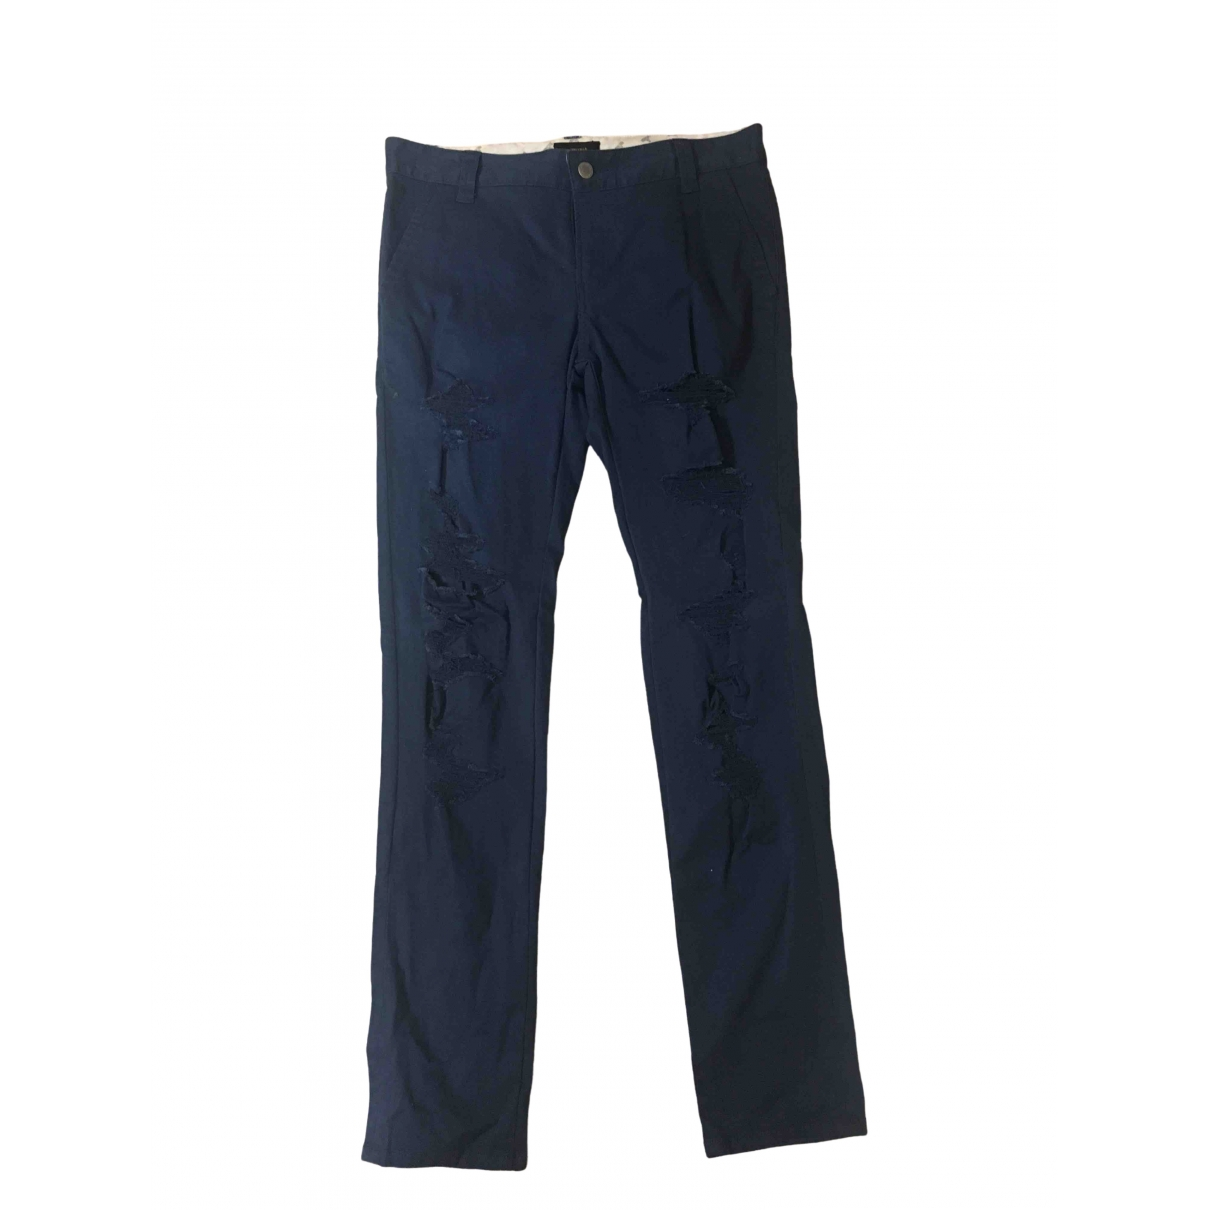 Undercover \N Blue Cotton - elasthane Jeans for Men 29 US